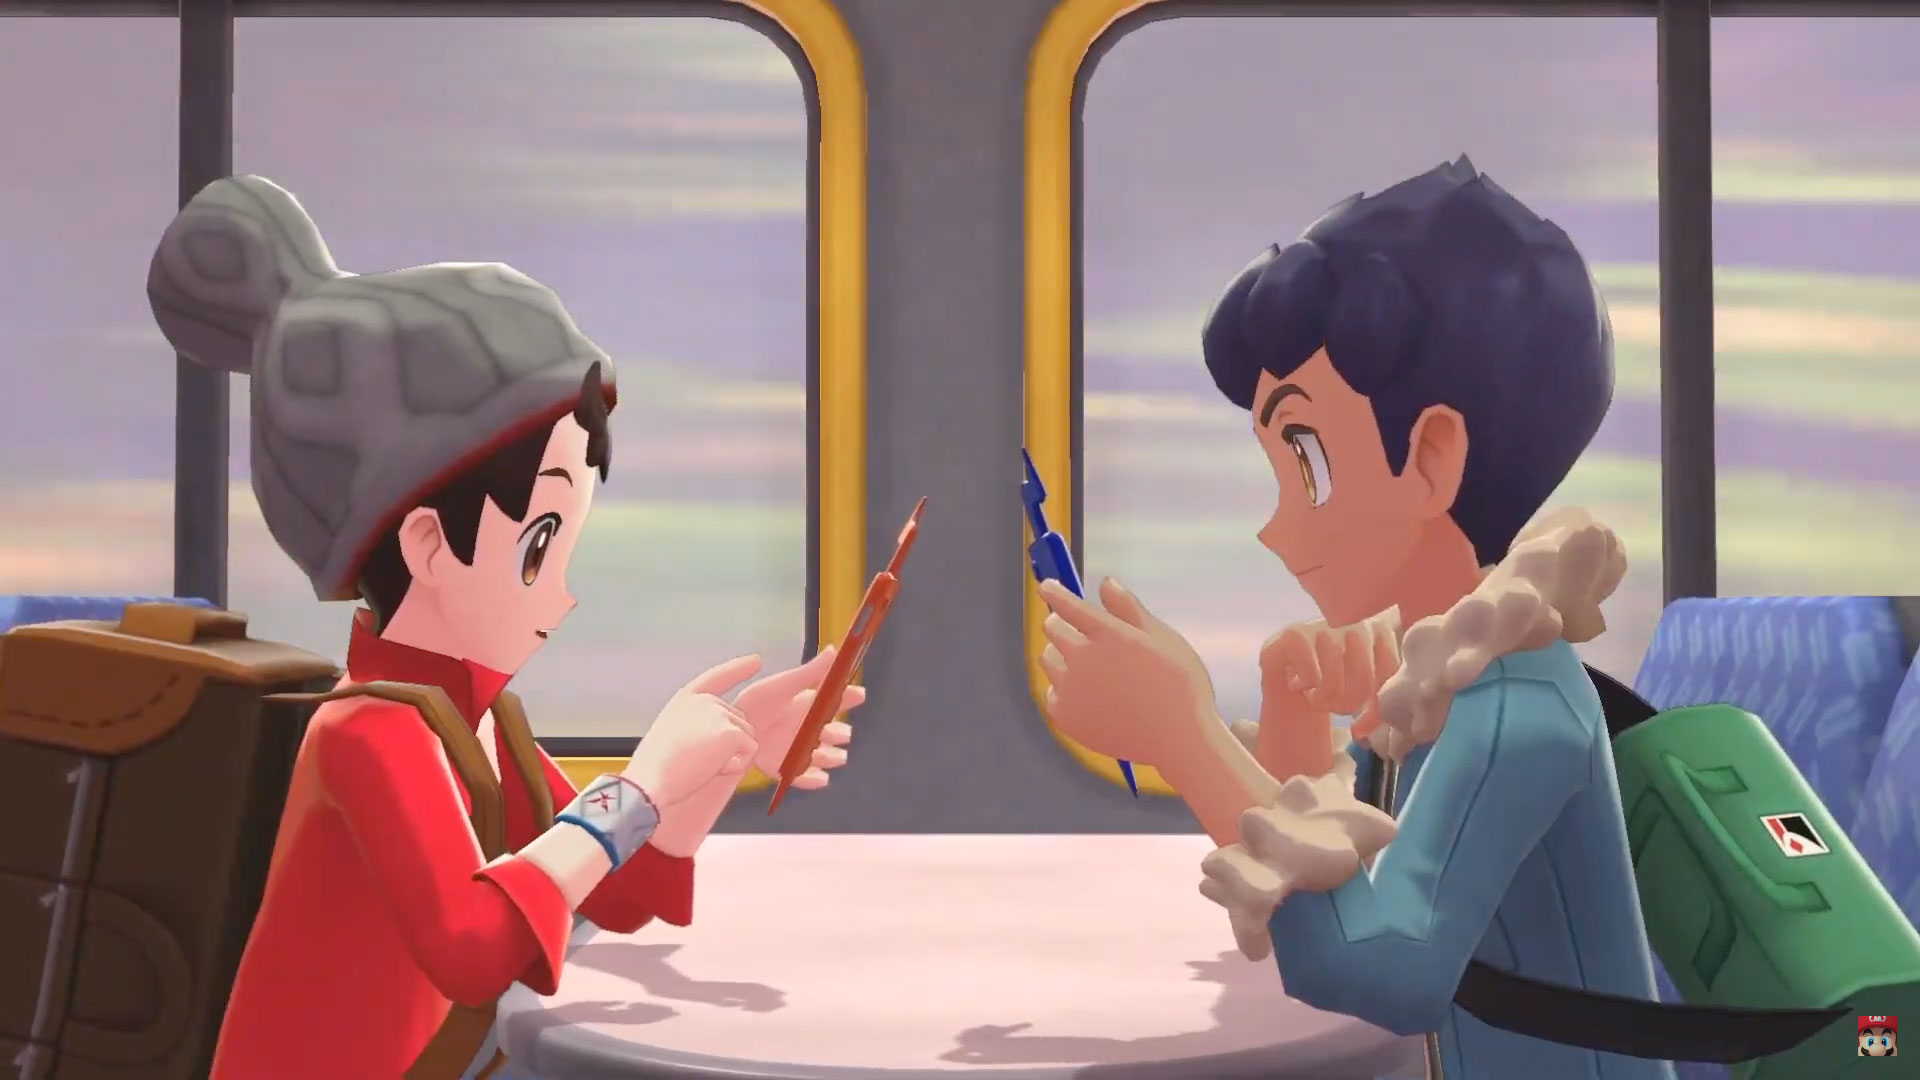 New Pokemon Sword And Shield Trailer Reveals A Tonne Of New Features